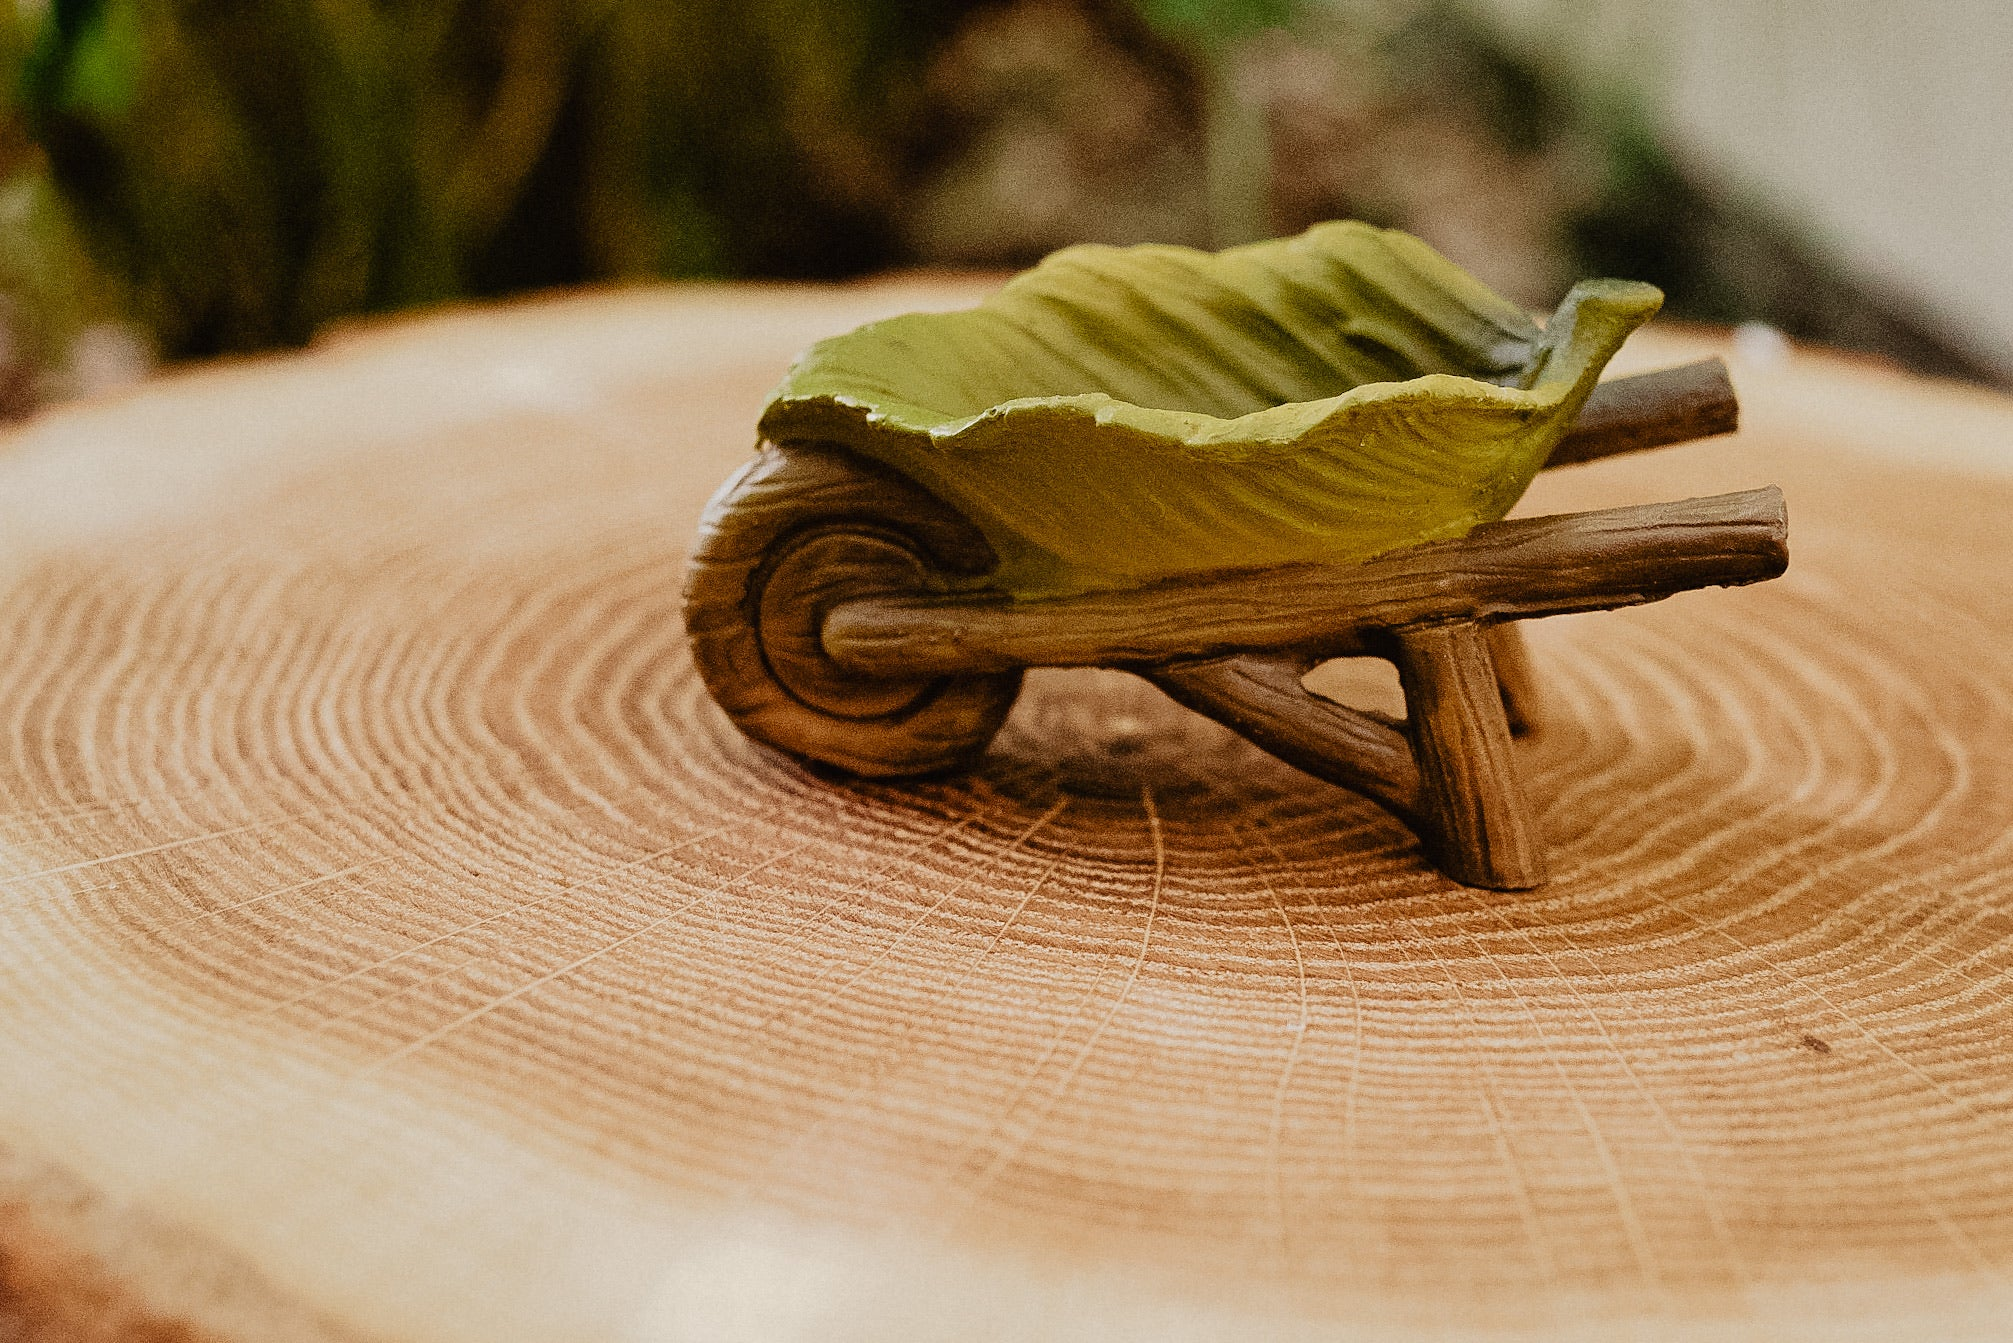 Mini Leaf Wheelbarrow